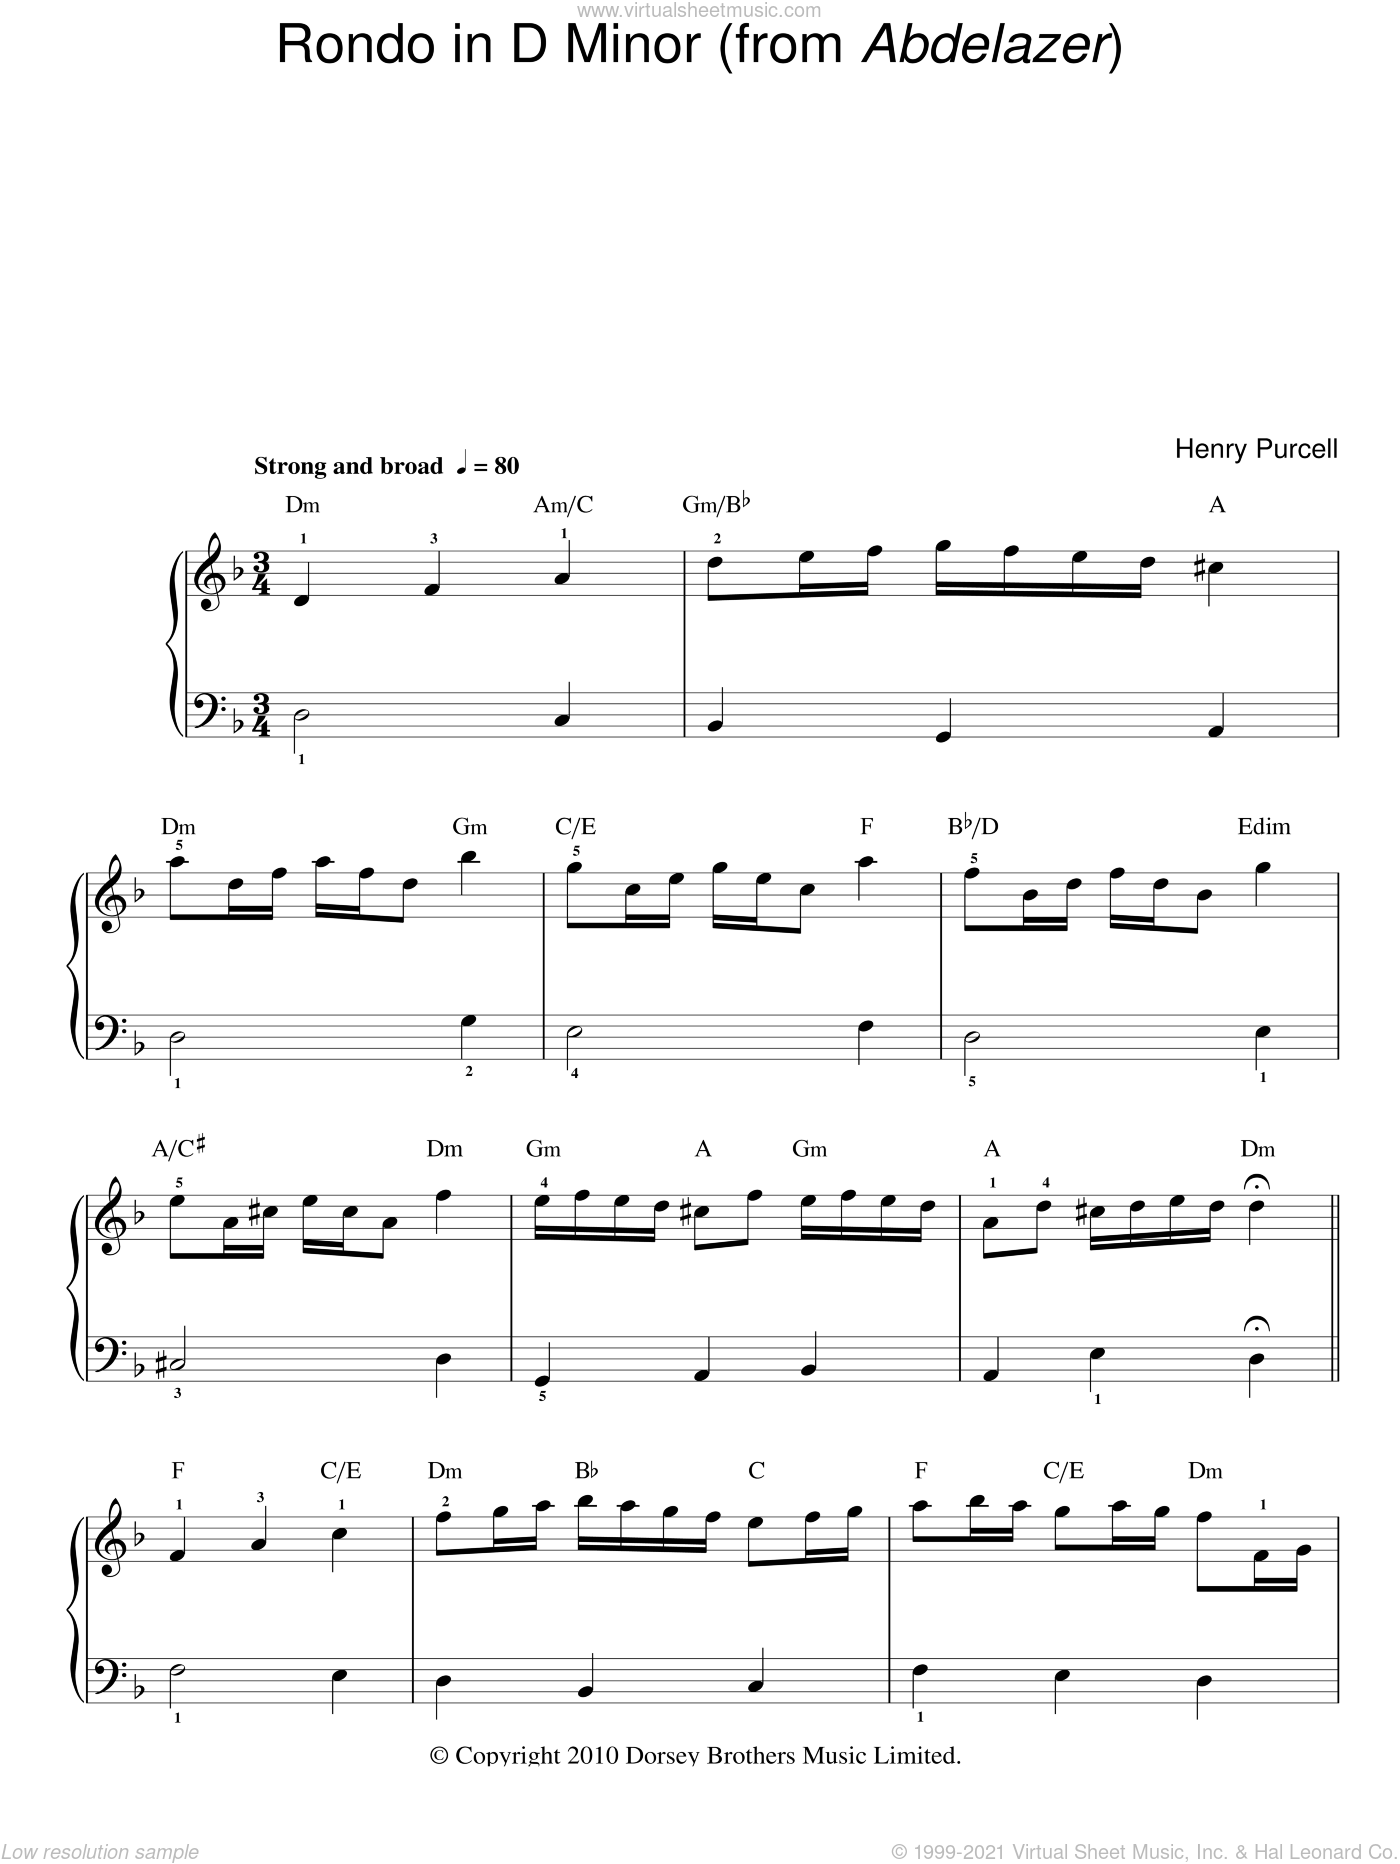 Rondo In D Minor (from Abdelazer) sheet music for piano solo (chords) by Henry Purcell